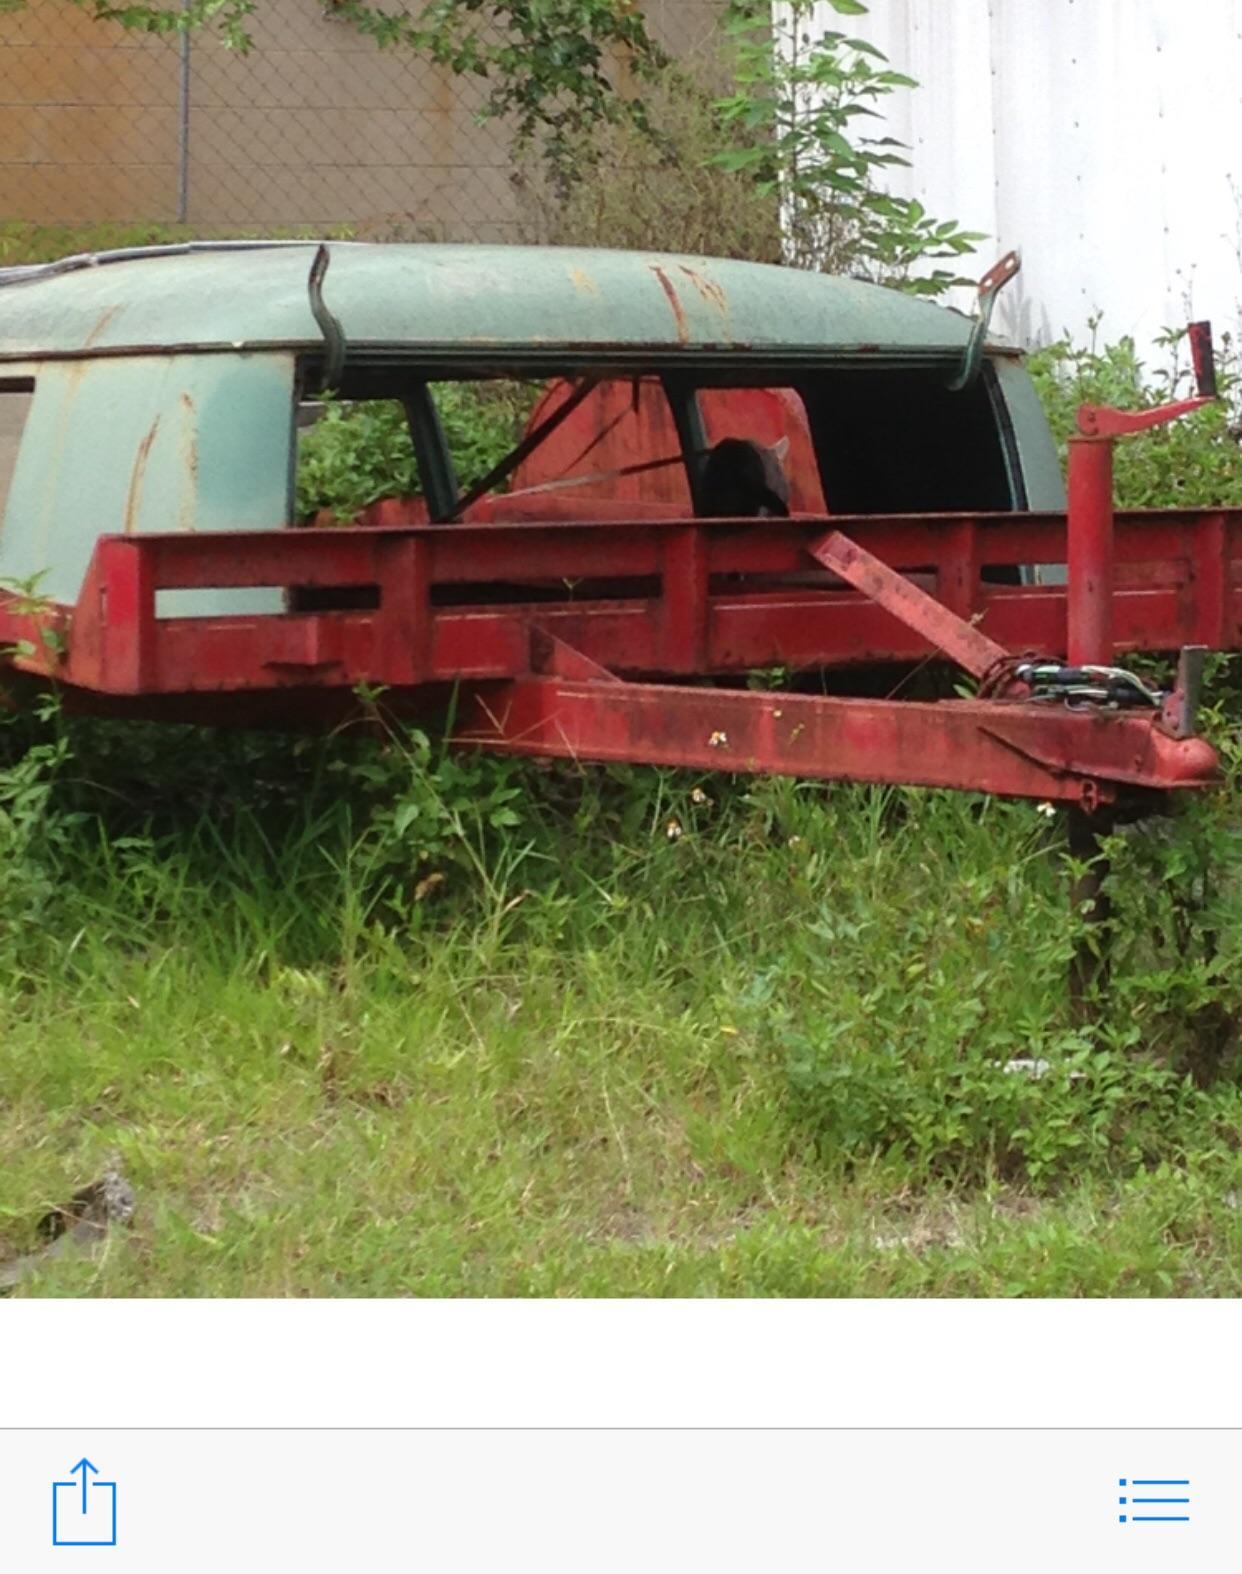 Stolen tandem axle trailer with Westy roof clip